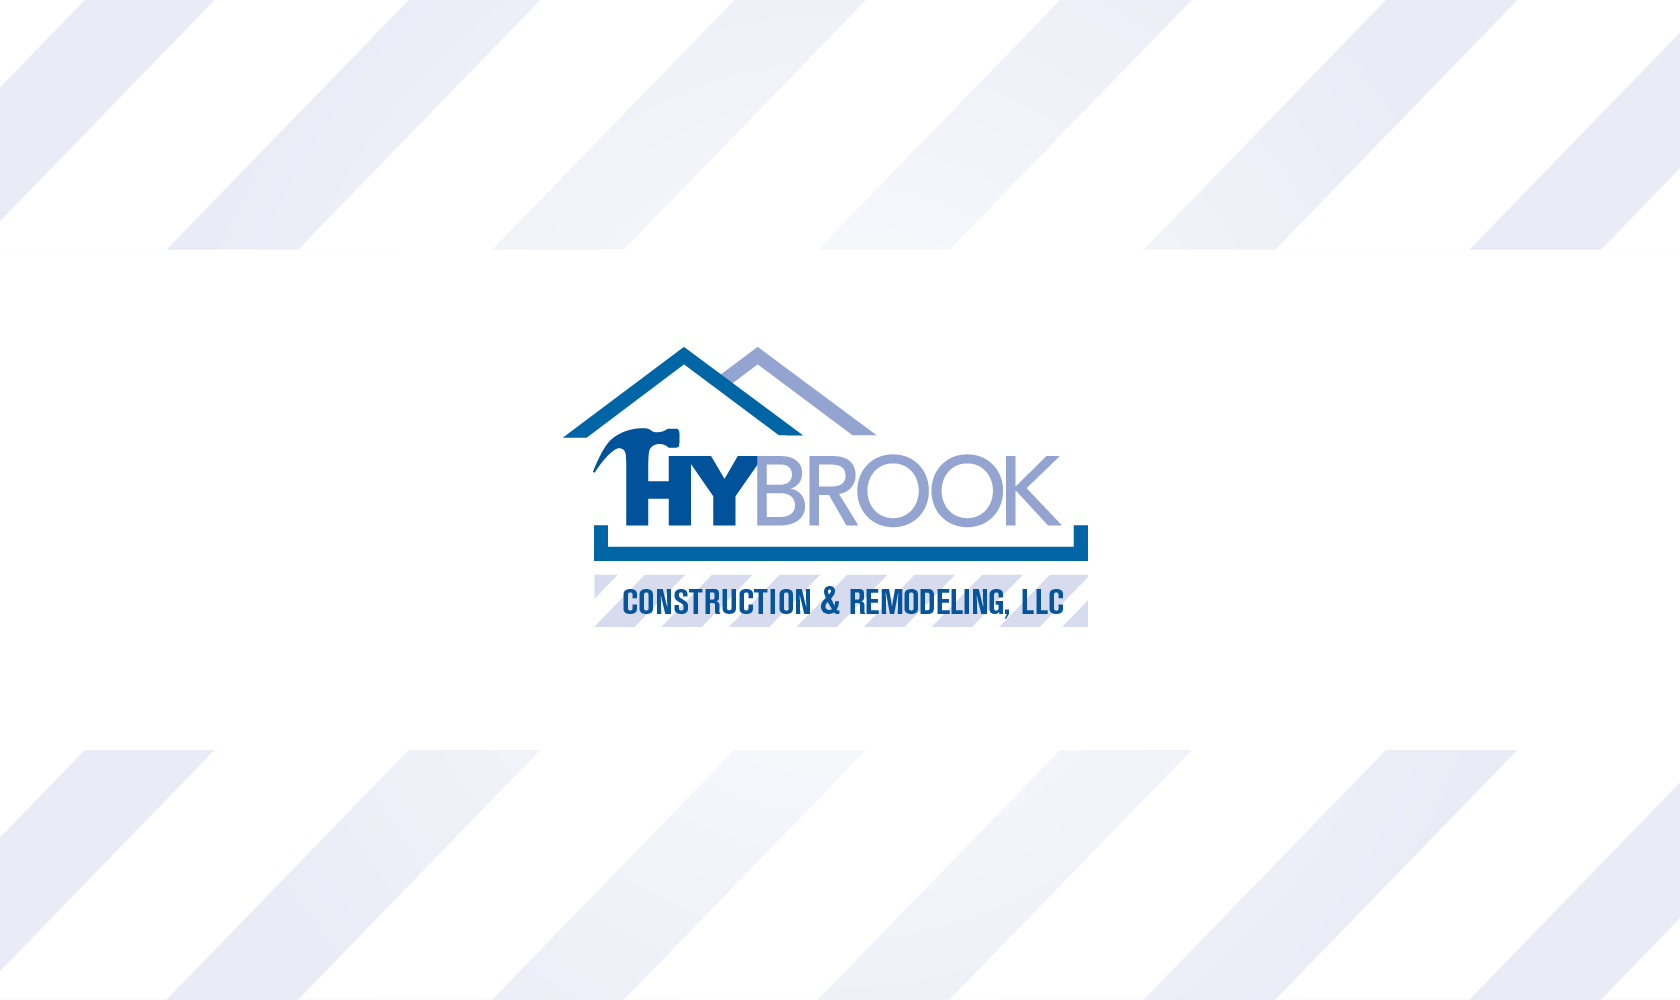 Bill Rogers Design - Hybrook Construction & Remodeling, LLC - Logo Design - Brand Identity Design